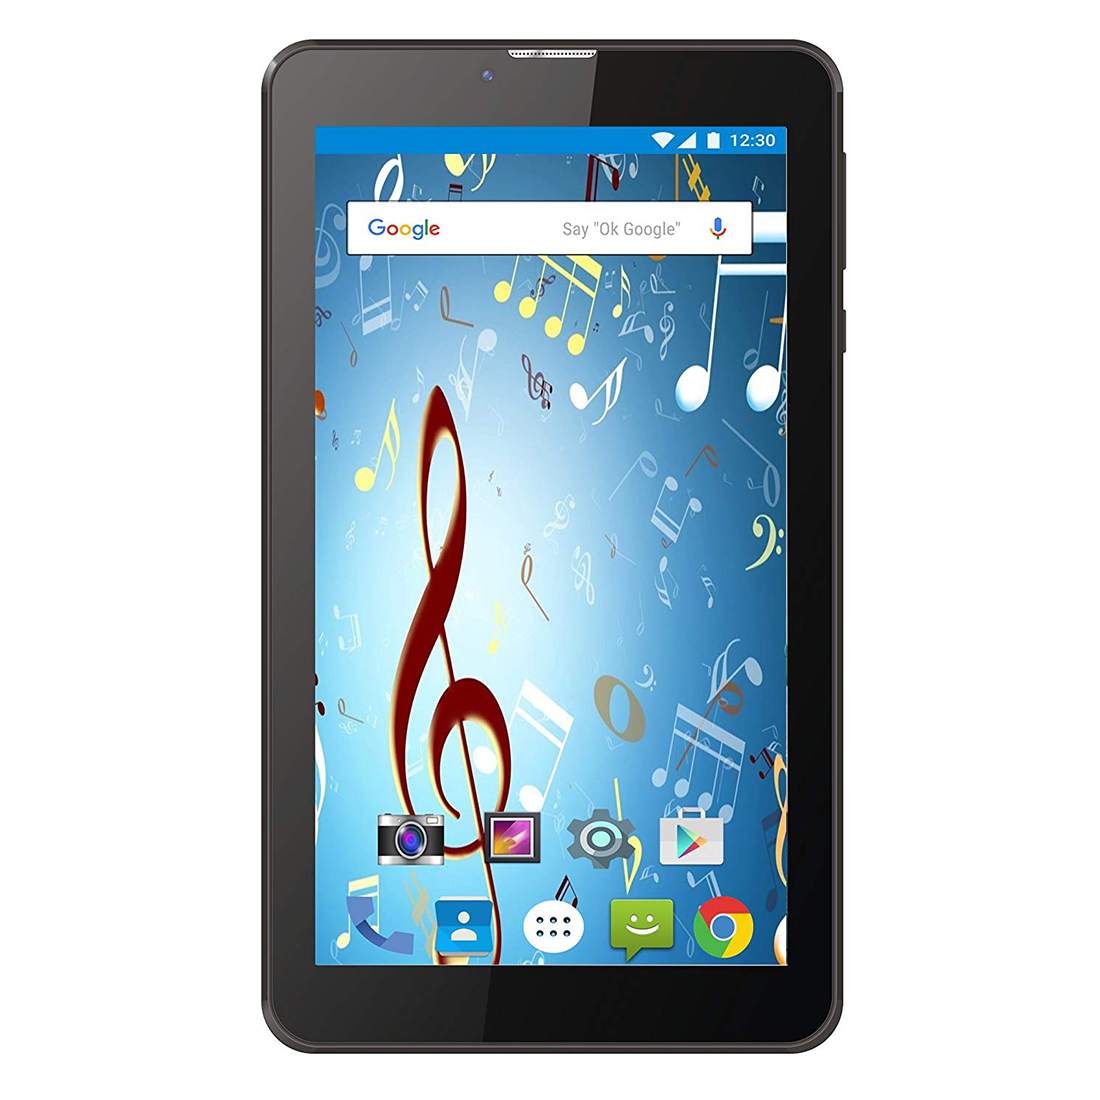 IKall N9 (1+8) Tablet - Black